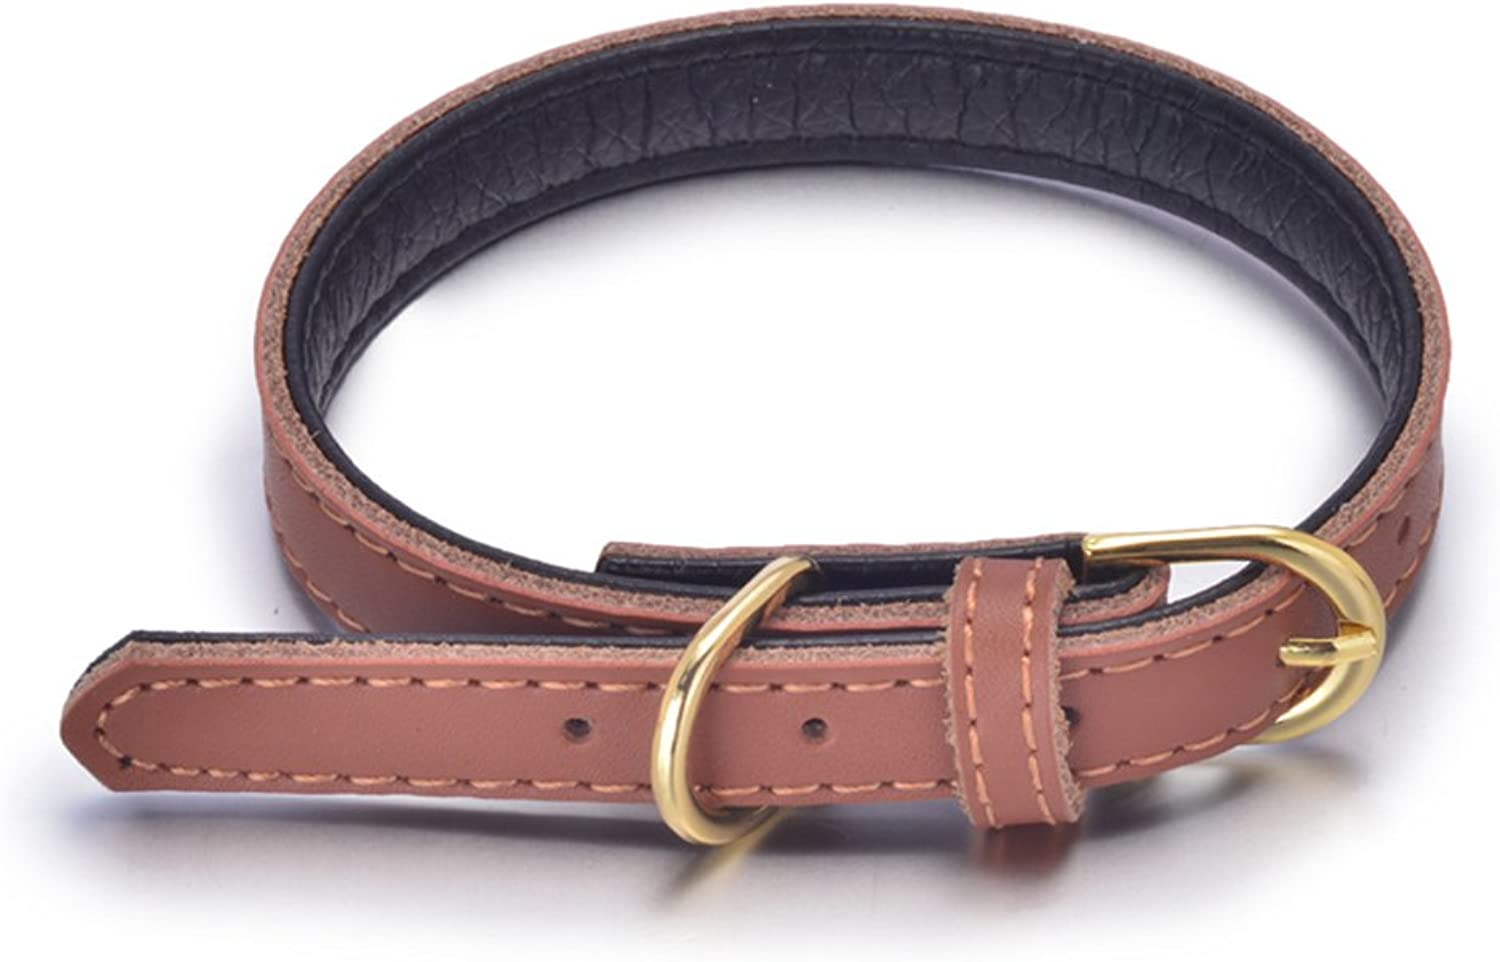 PETCARE Classic Dog Leather Collars Double Ply Soft Padded Basic Dogs Collar for Small Medium Large Dogs (S, Brown)